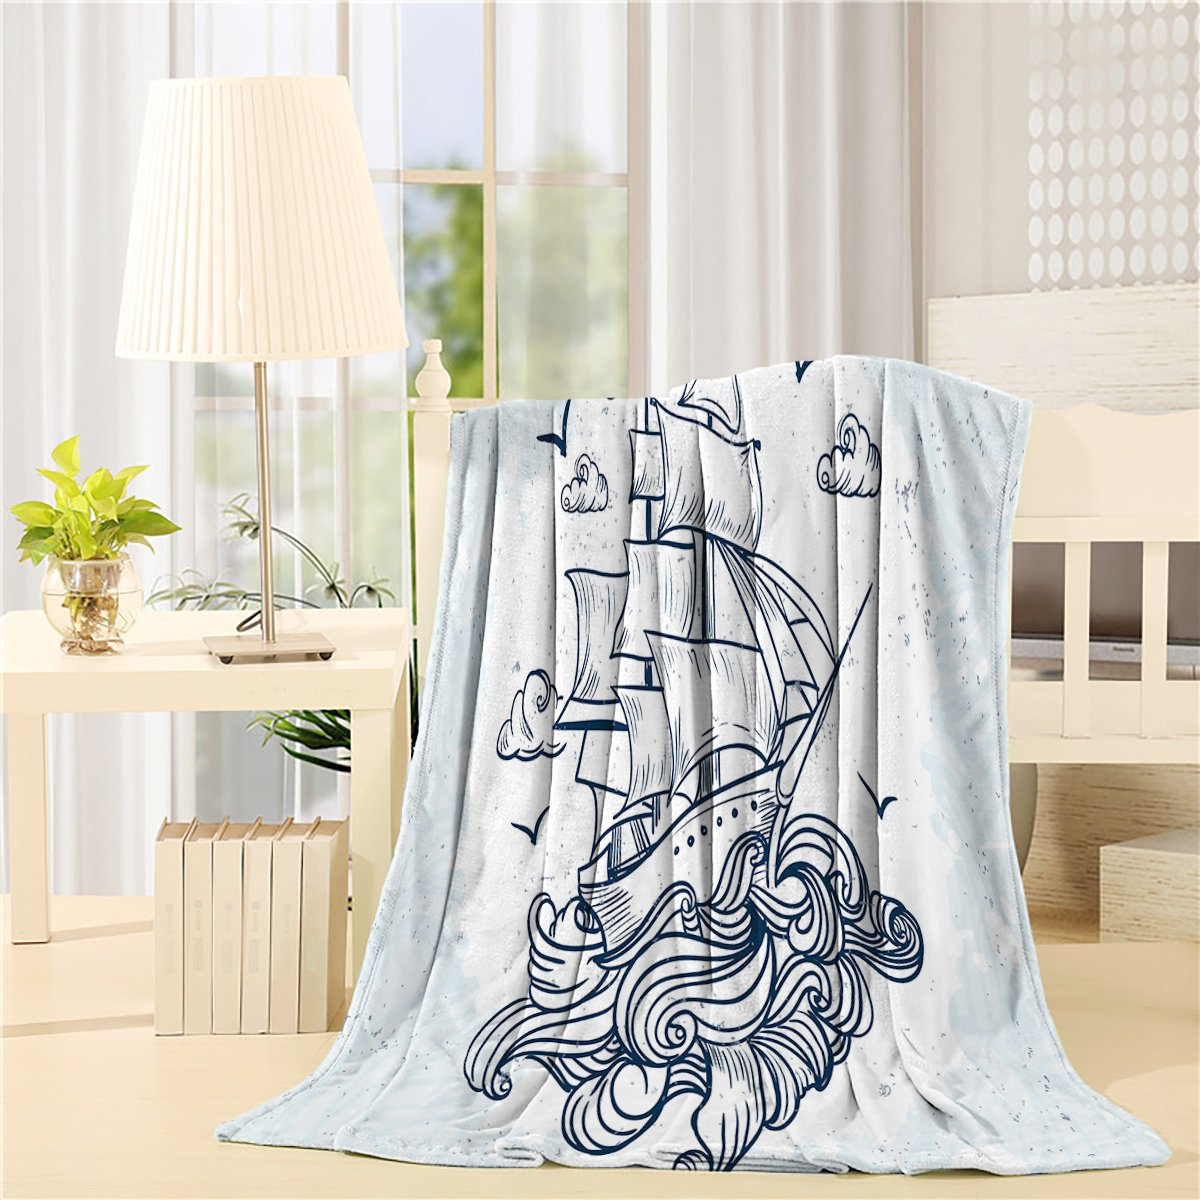 CHARMHOME Ultra Plush Comfort Throw Blanket 50 x 80 inch Lightweight Flannel Fleece Bed Blanket for Bedroom Living Rooms Sofa Couch - Navy Blue Sailboat durable modeling